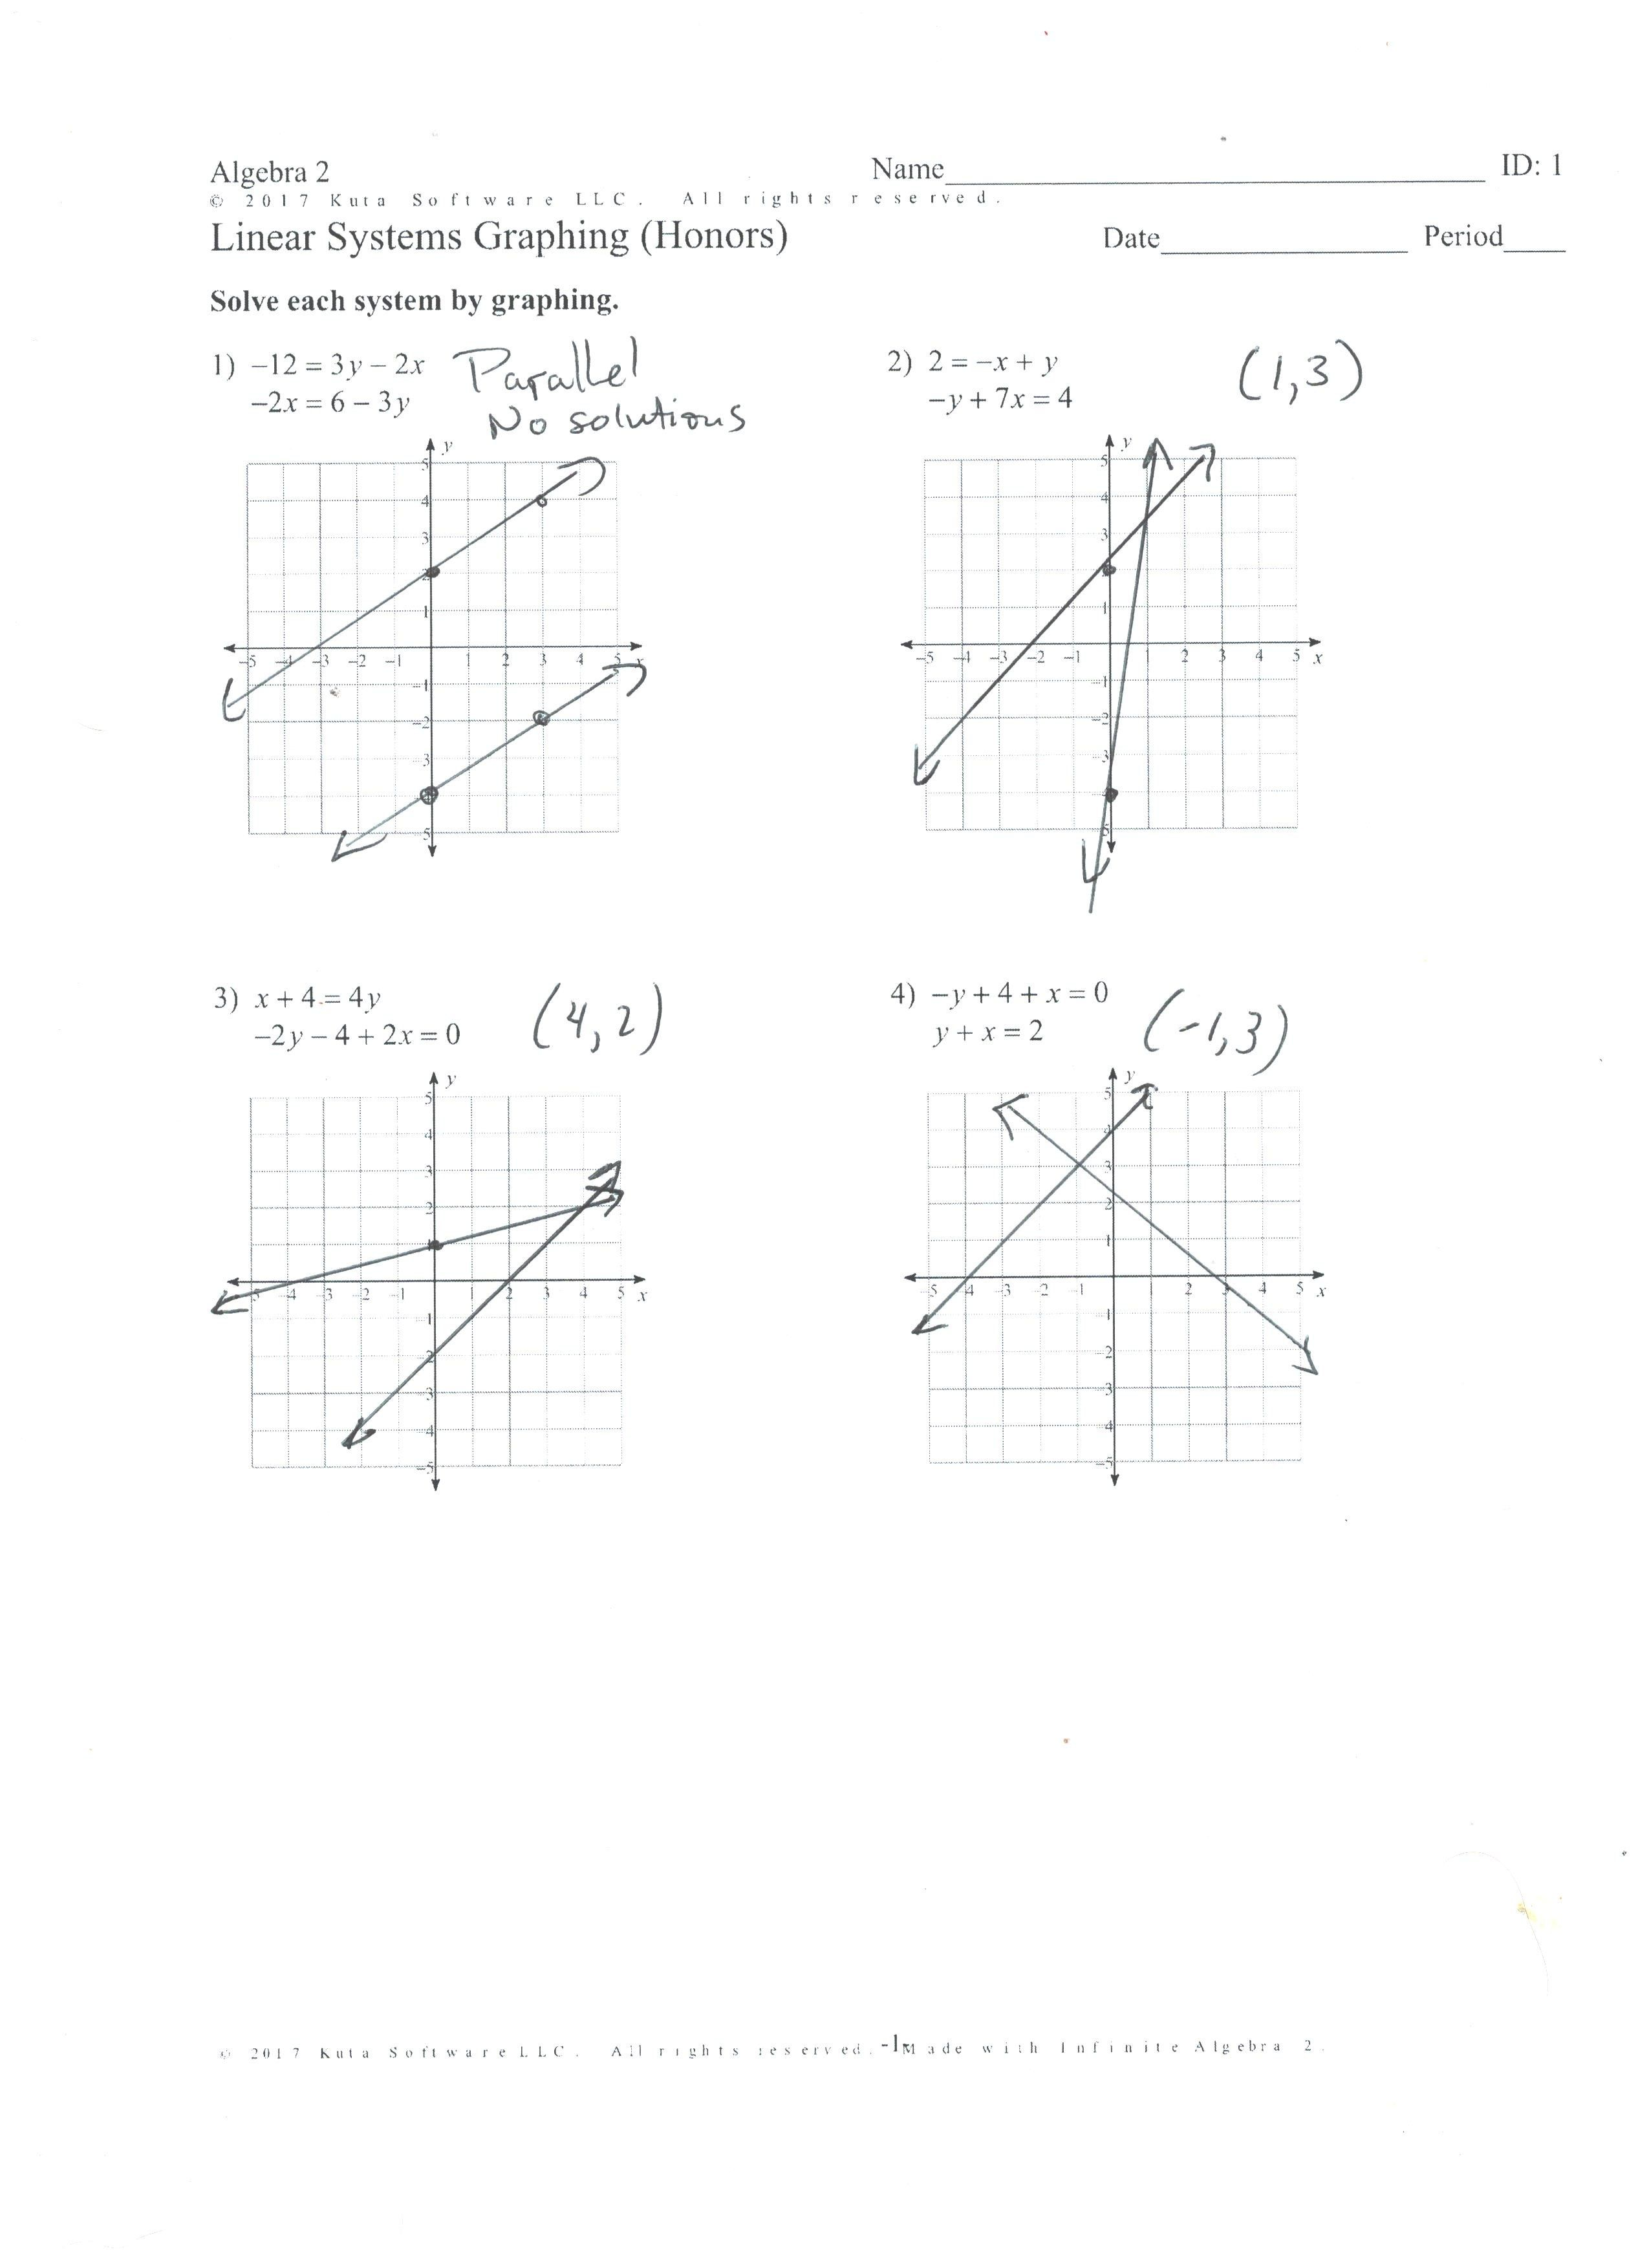 how to solve system of inequalities word problems